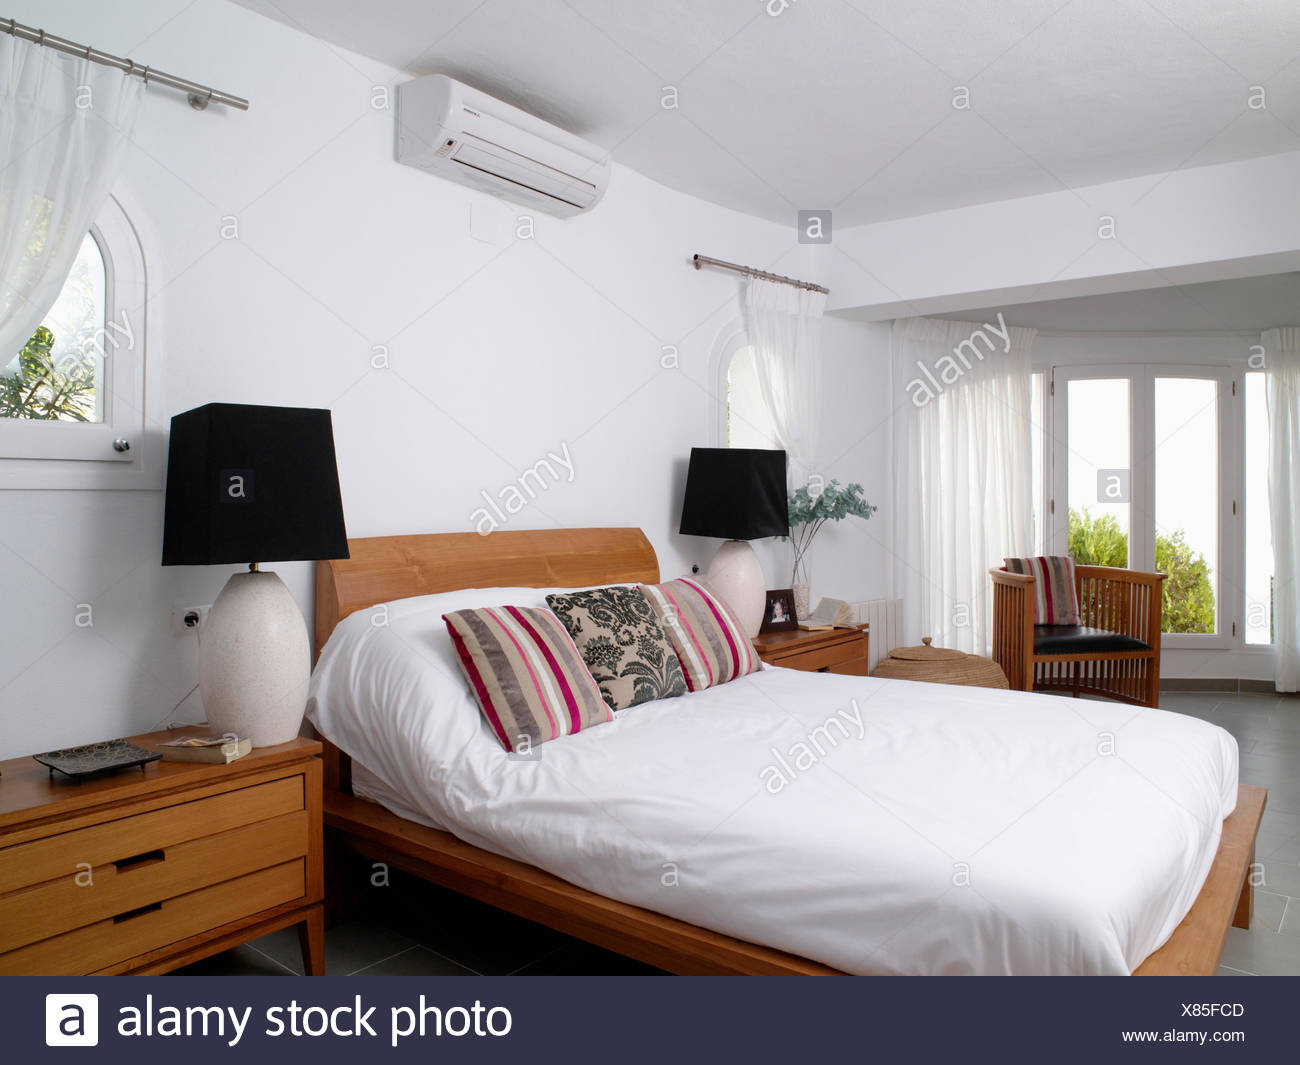 Small air-conditioning unit above bed with white duvet and ...